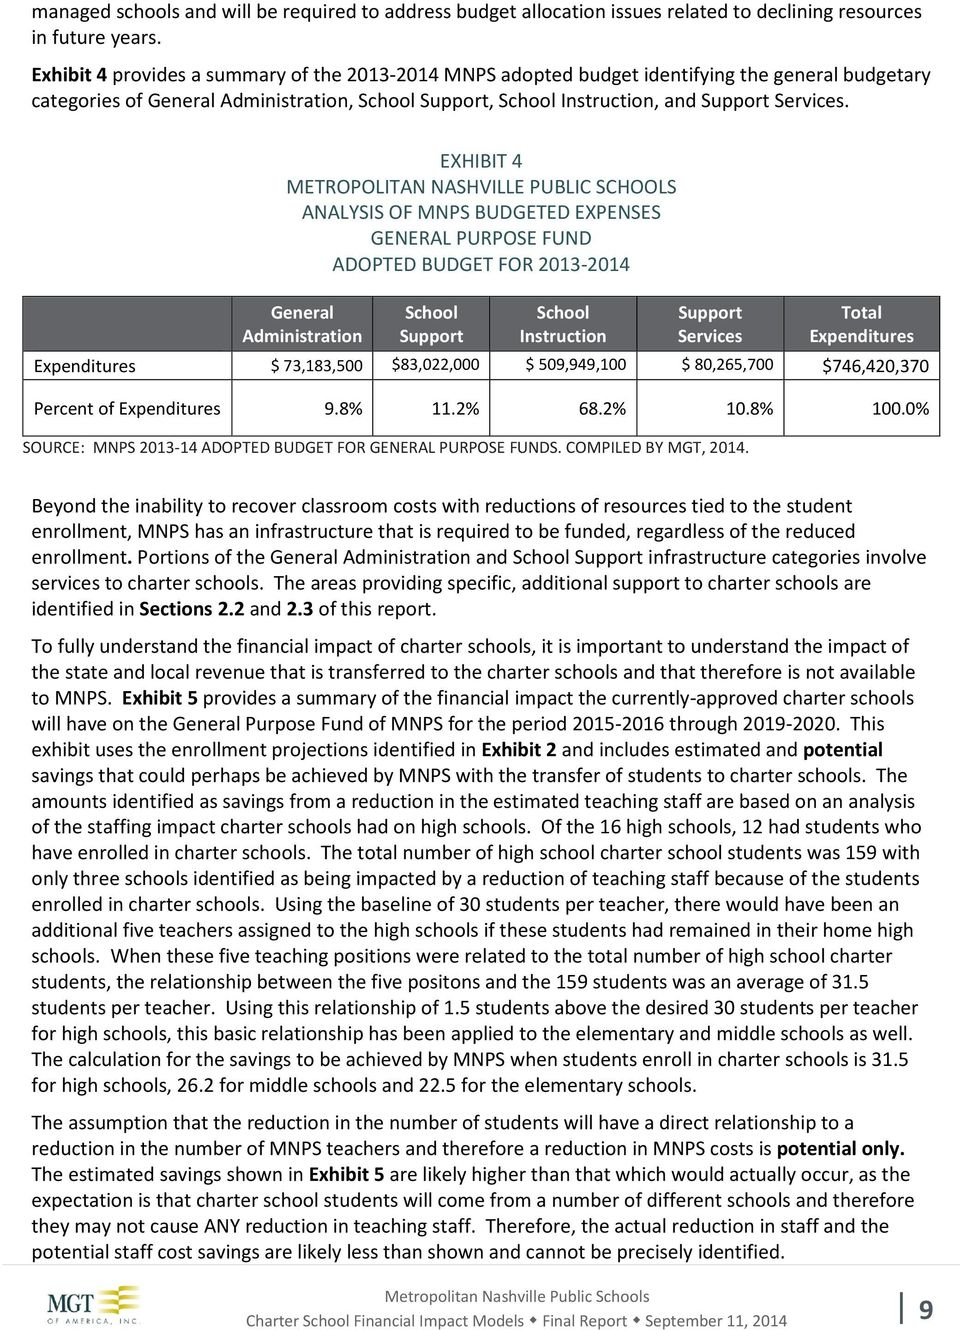 EXHIBIT 4 METROPOLITAN NASHVILLE PUBLIC SCHOOLS ANALYSIS OF MNPS BUDGETED EXPENSES GENERAL PURPOSE FUND ADOPTED BUDGET FOR 2013-2014 General Administration School Support School Instruction Support